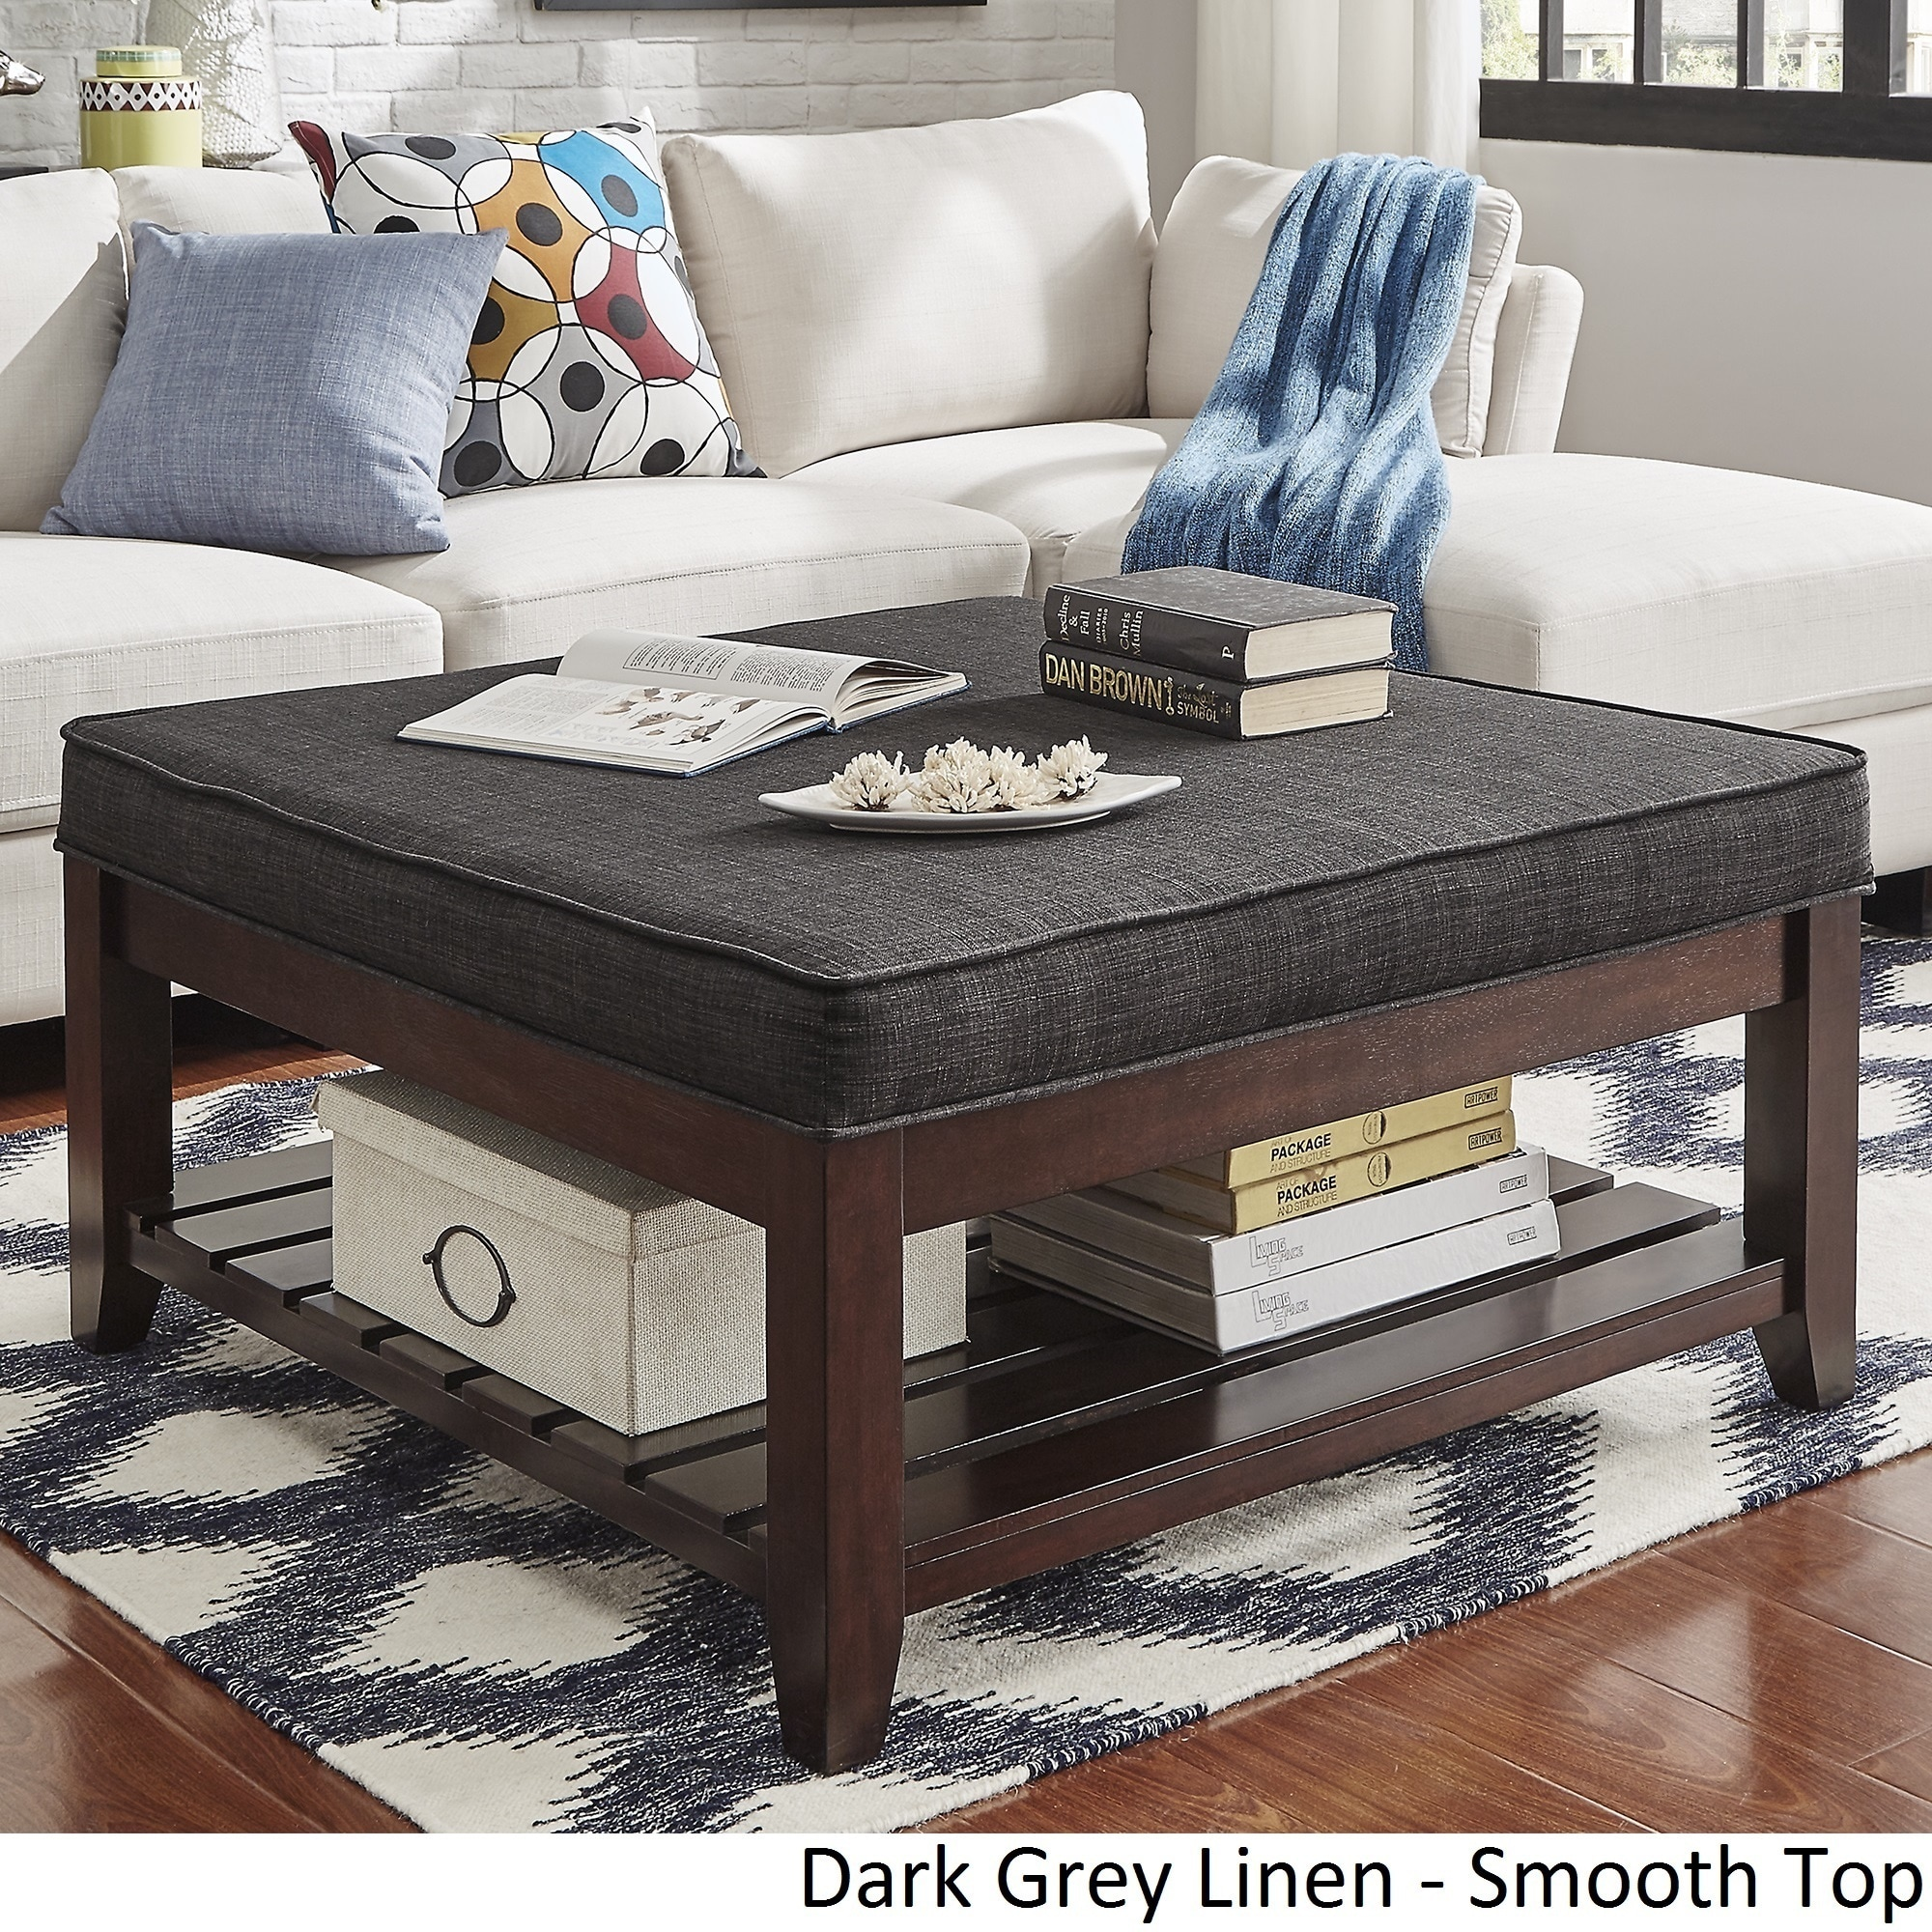 Lennon Espresso Planked Storage Ottoman Coffee Table By Inspire Q Clic On Free Shipping Today 13447189